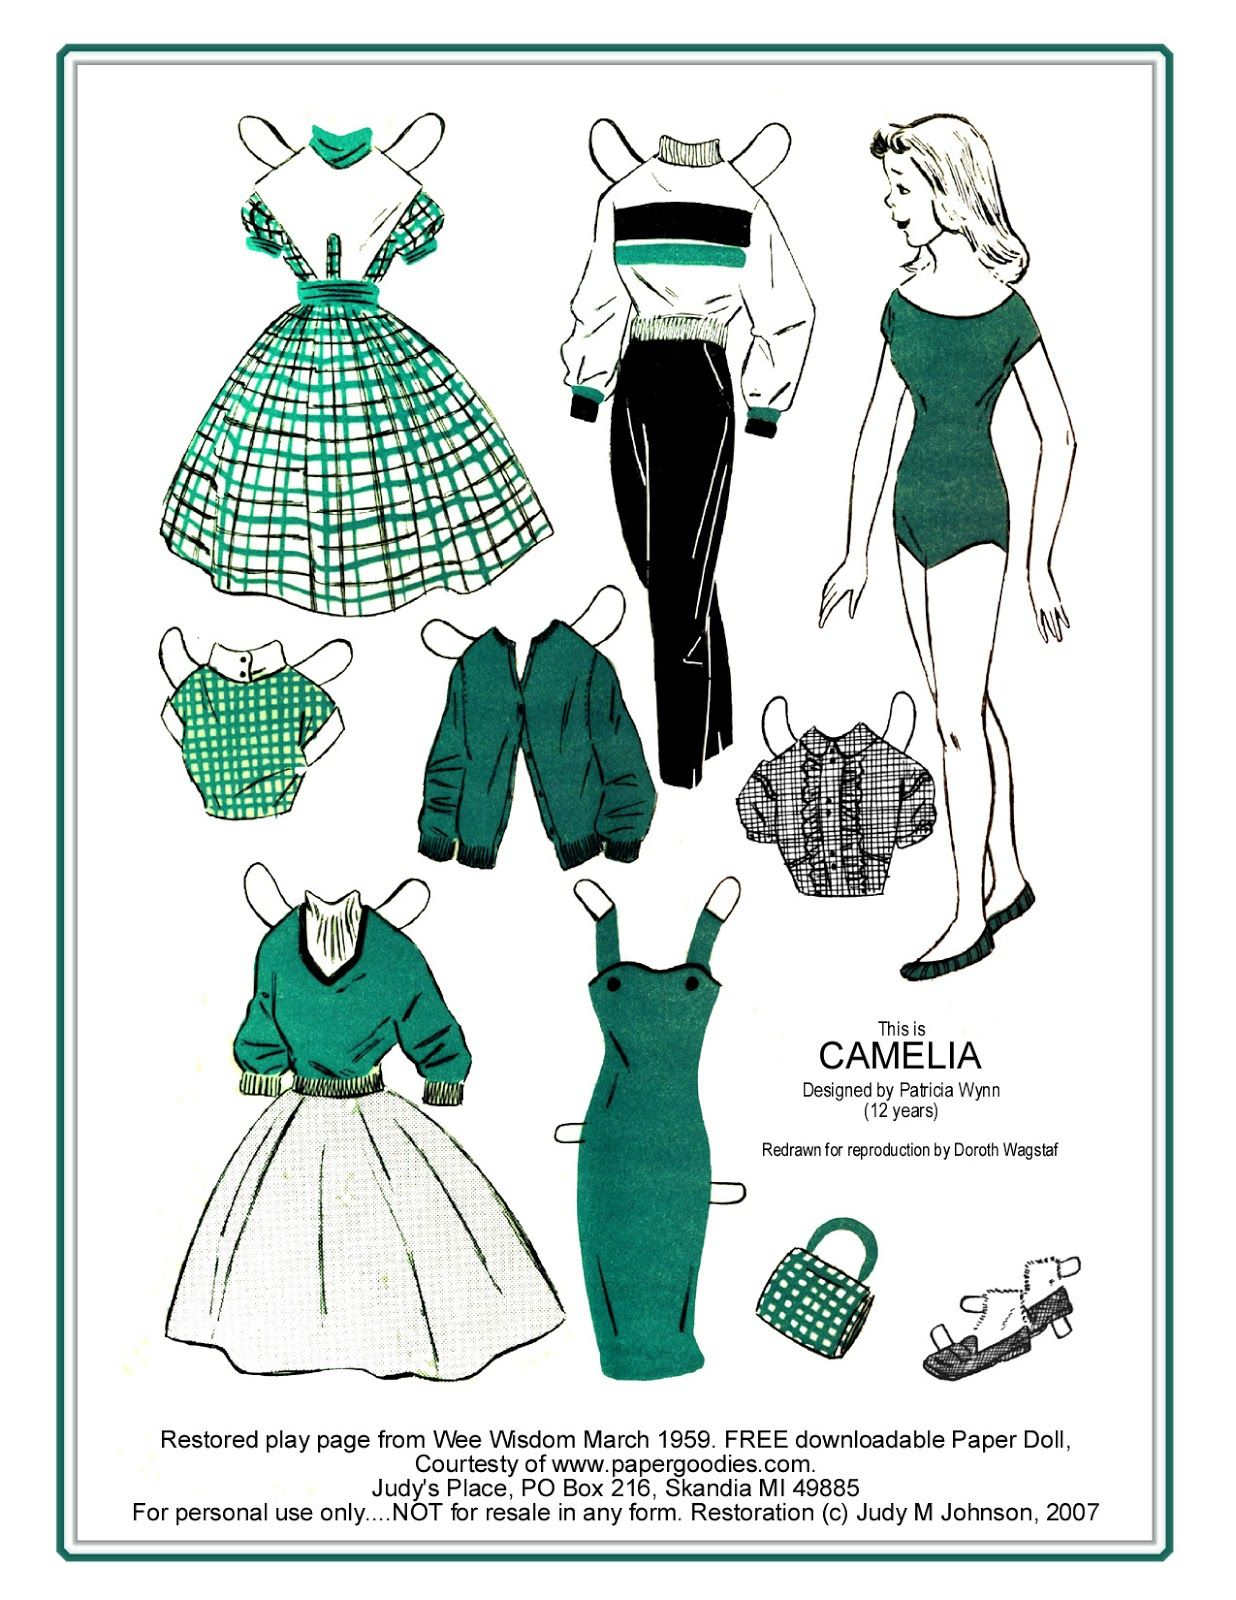 This is CAMELIA Designed by Patricia Wynn (12 years) Redrawn by Dorothy Wagstaff  Restored Play Page from Wee Wisdom March 1959 |  PORTUGUESE: Patatitralalá...: PRESENTE PARA AS MENINAS MAMÃES... VAMOS BRINCAR? ENGLISH: Patatitralalá...: GIFT For MOMS GIRLS... LET'S PLAY?